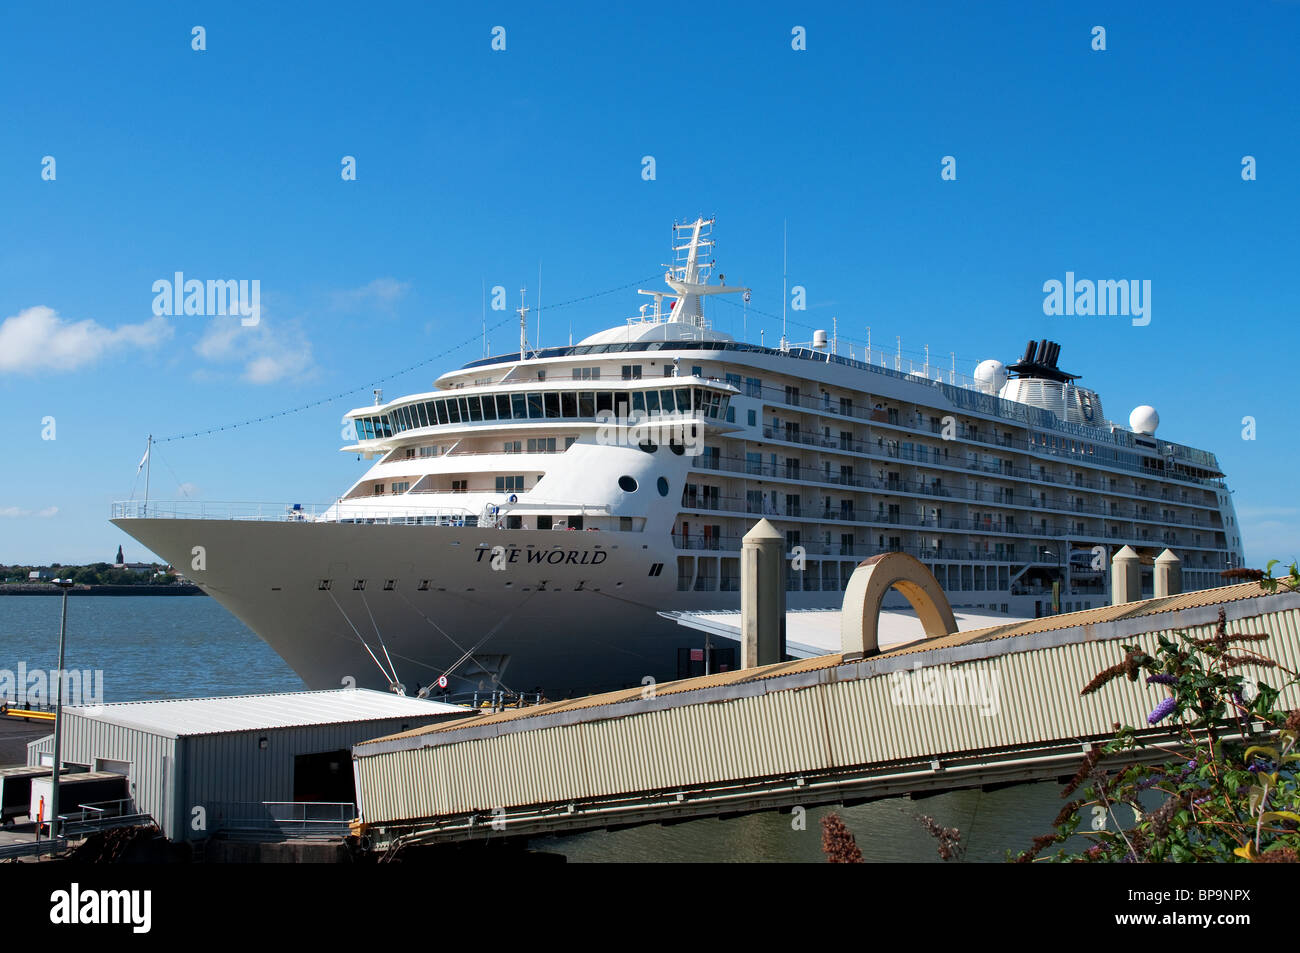 ' The World ' Luxury cruise liner docked at the Pier Head in Liverpool, UK - Stock Image